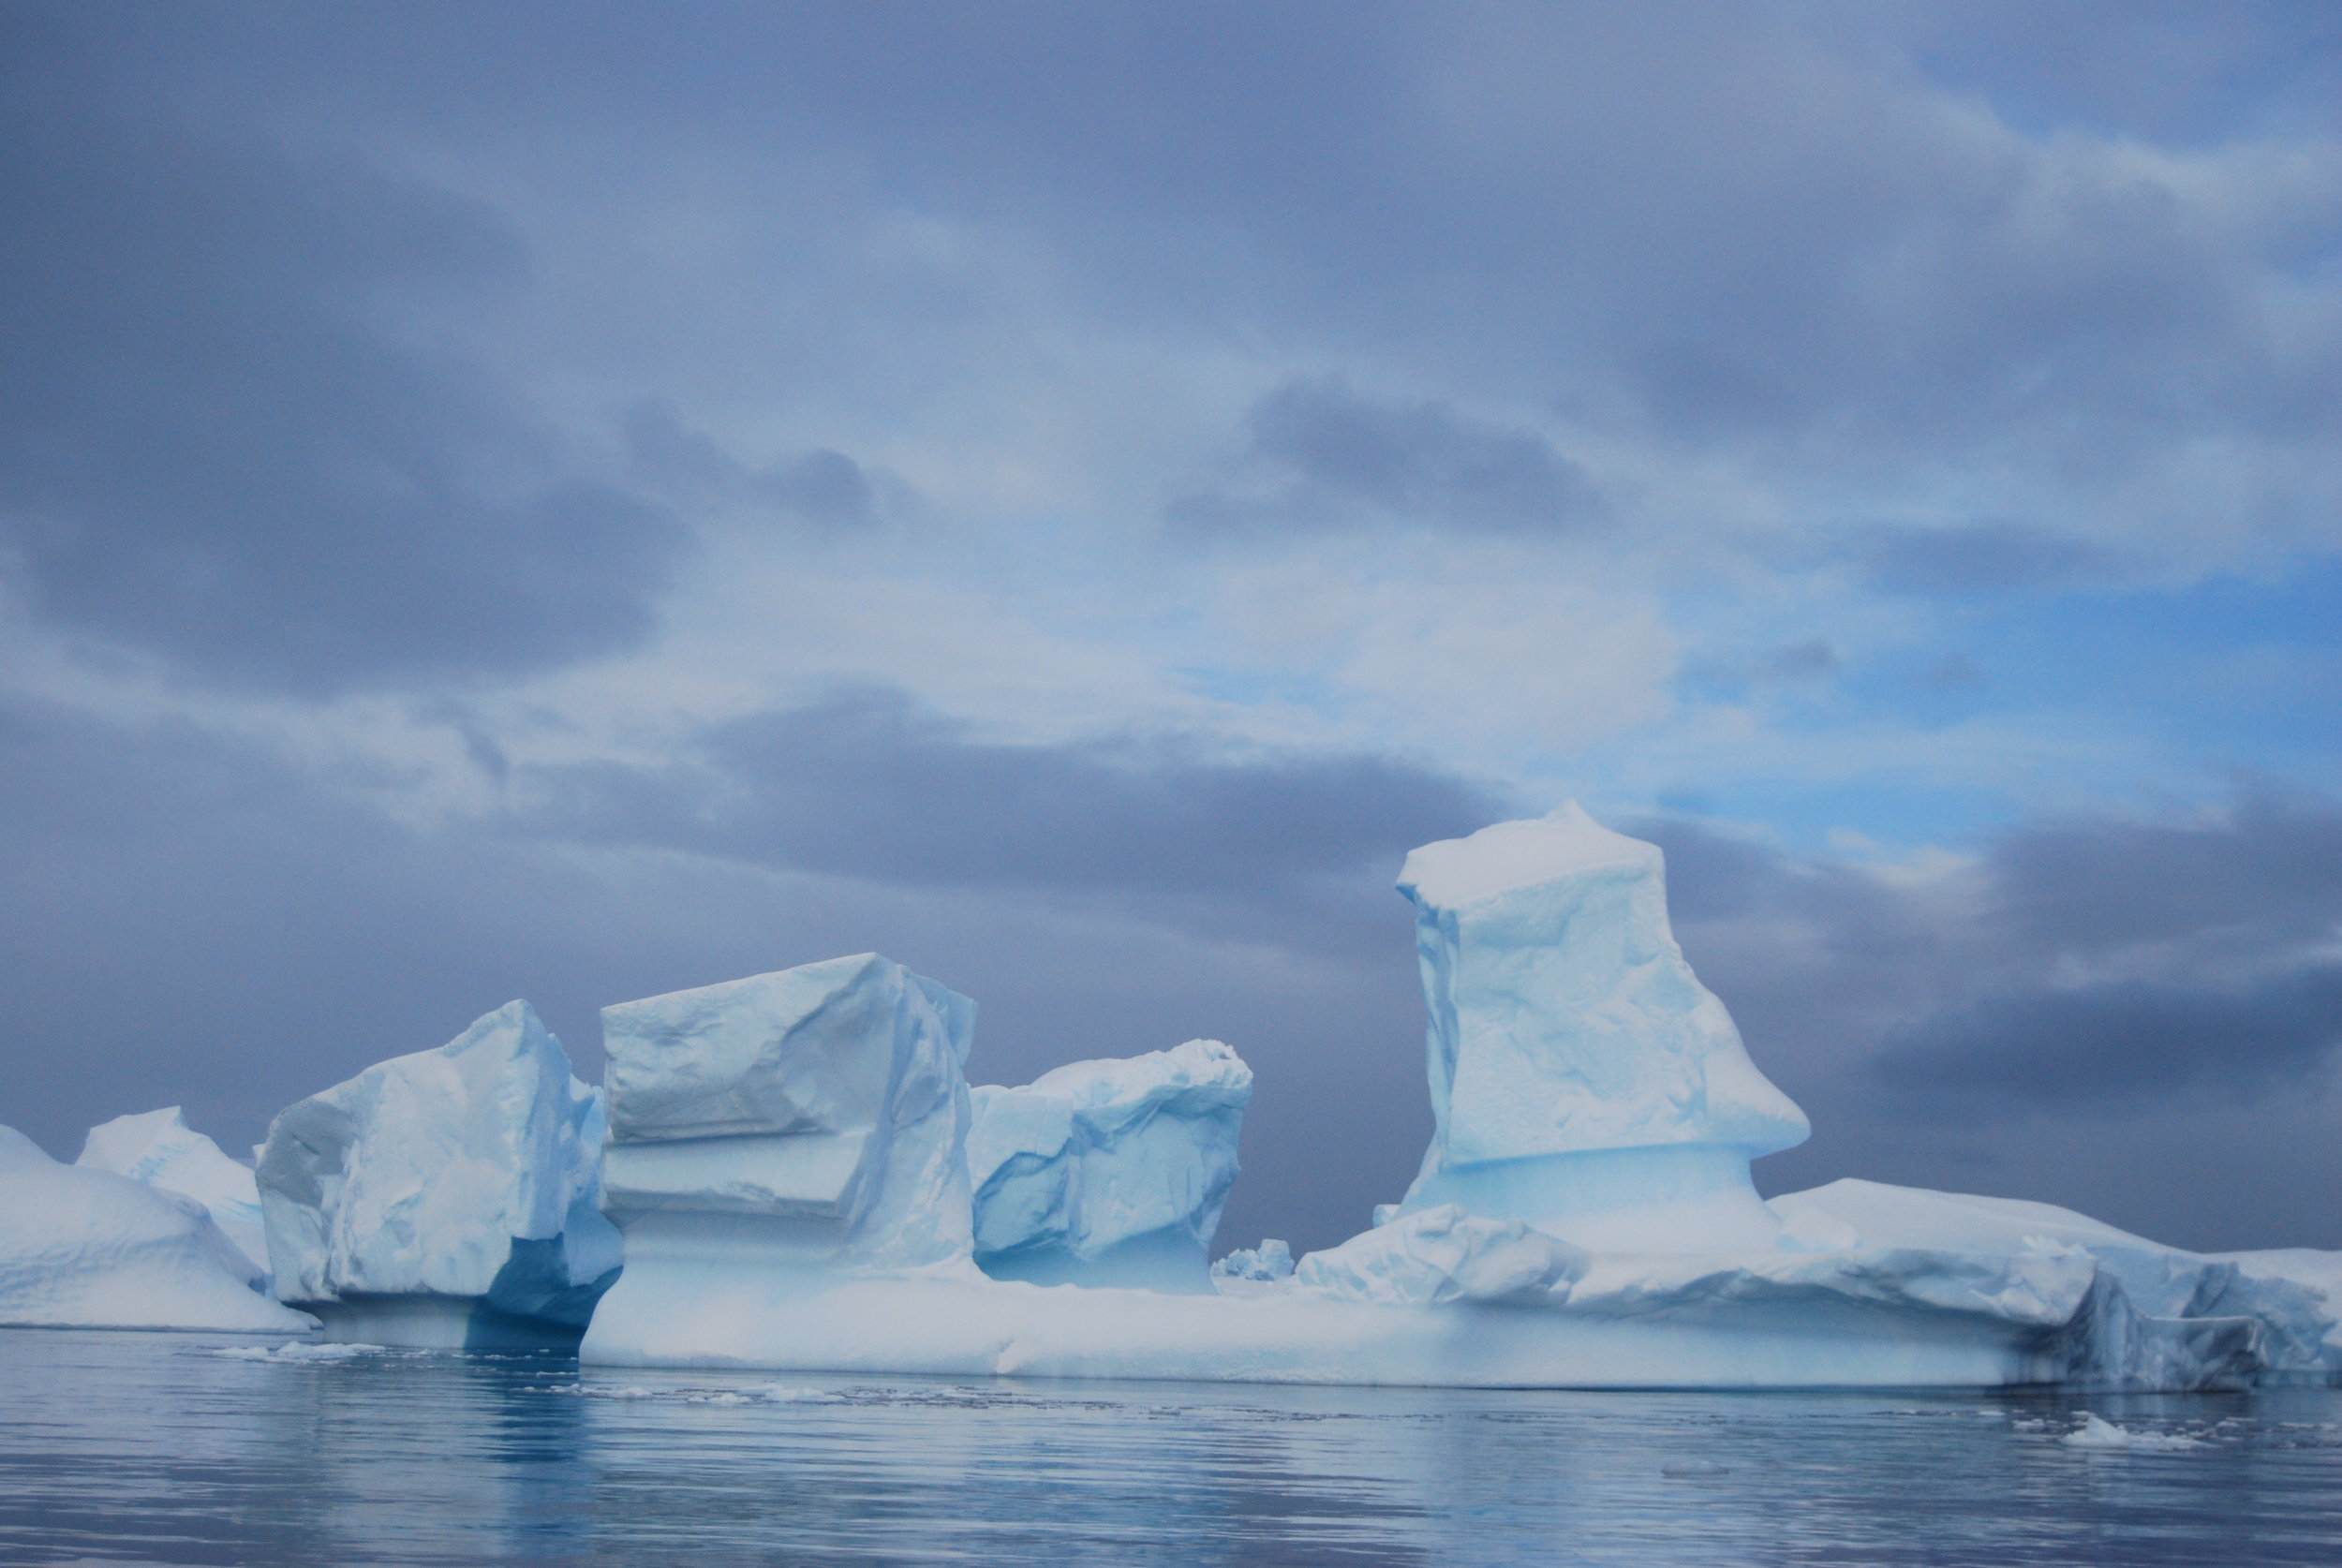 The spectacular blue and white Antarctic landscape (Picture Credits: Prerna Shah)